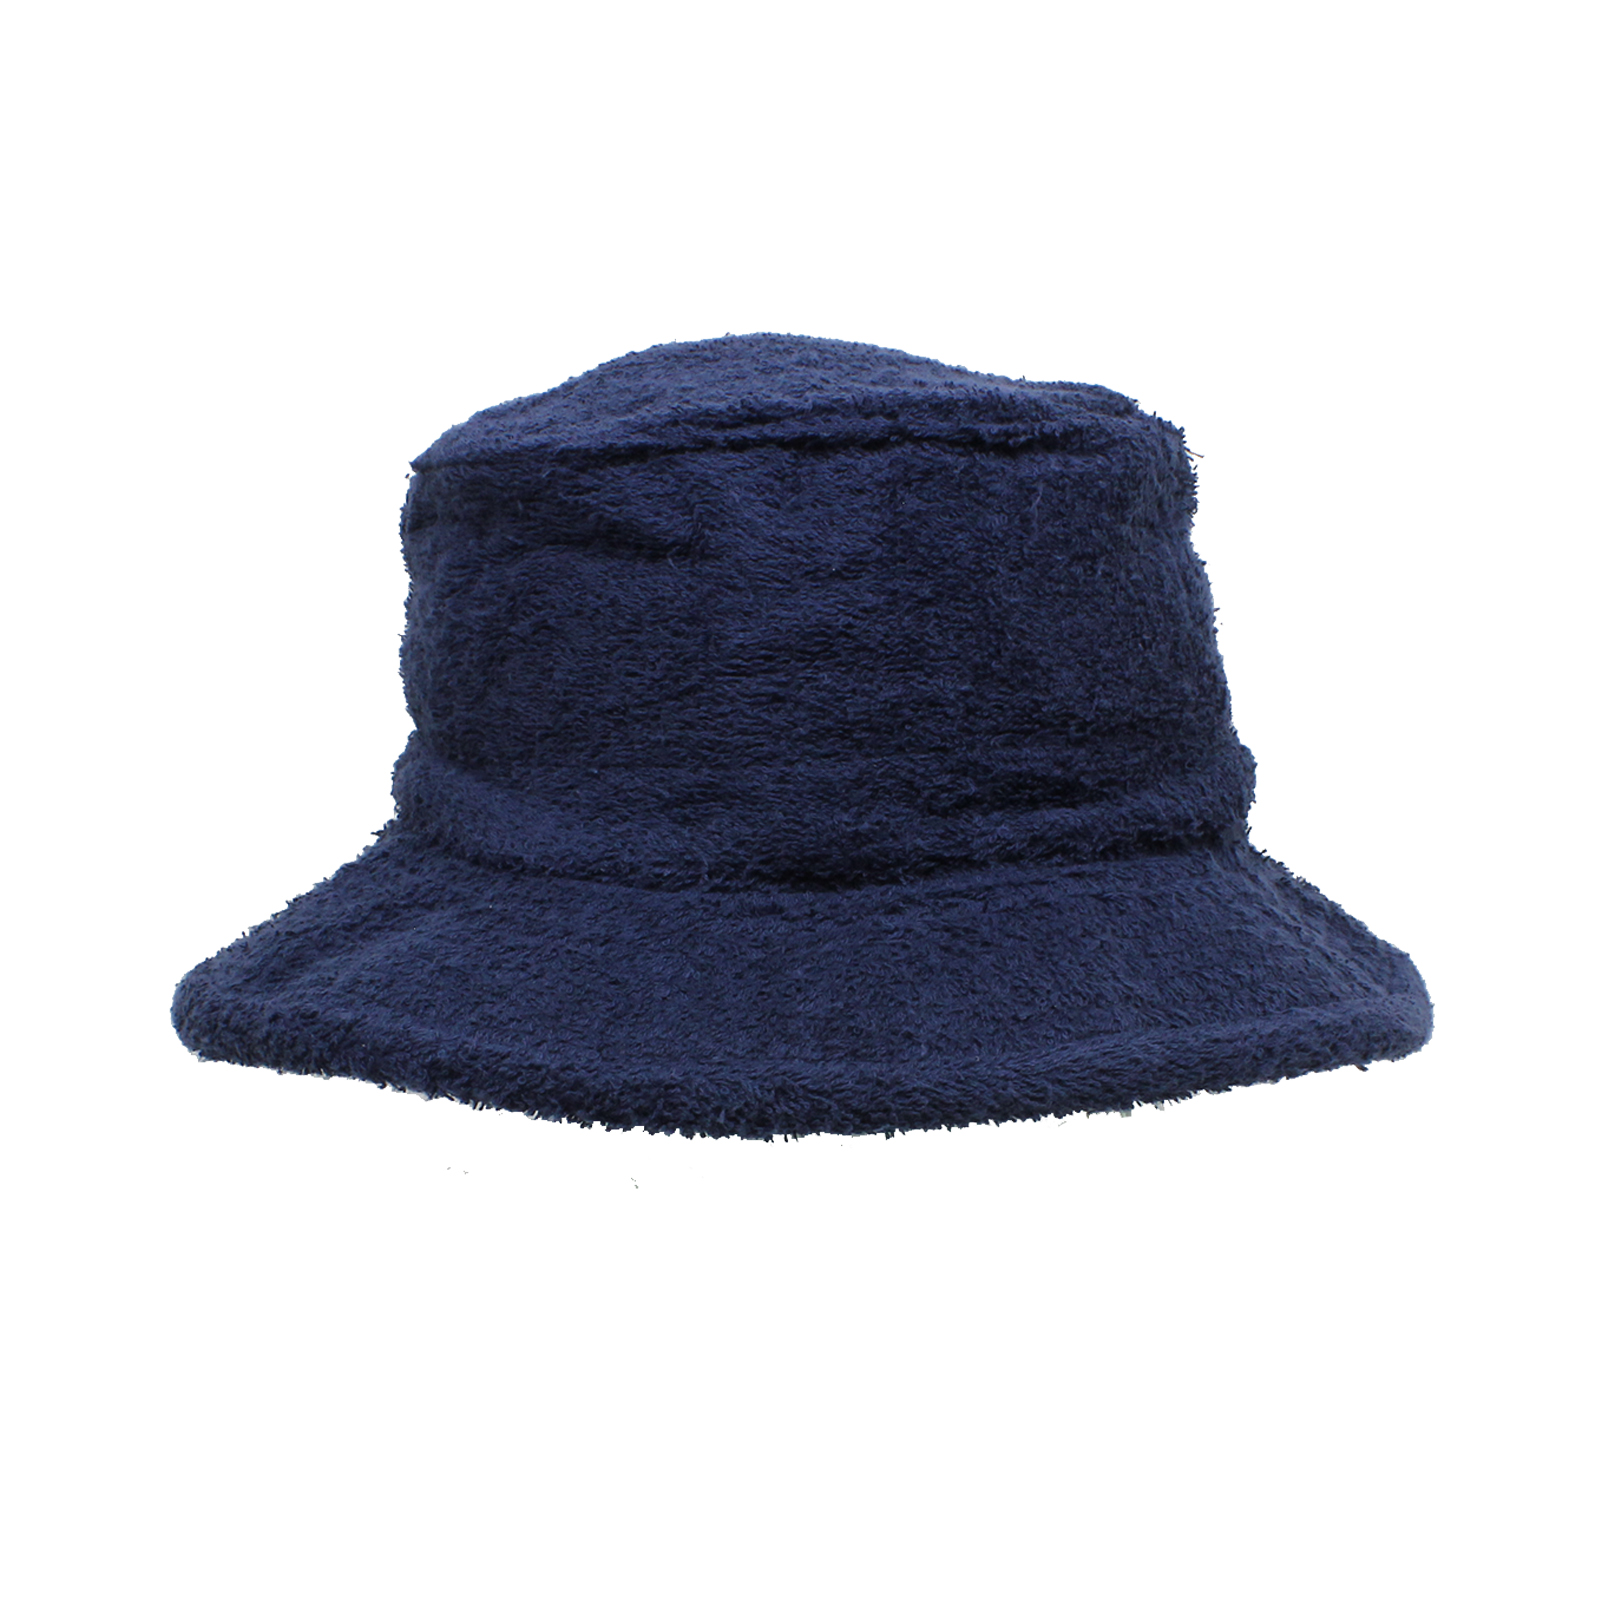 TERRY TOWELLING HAT - OUTBOUND SUMMER   CLOTHING-HEADWEAR-SUMMER ... e764447143d